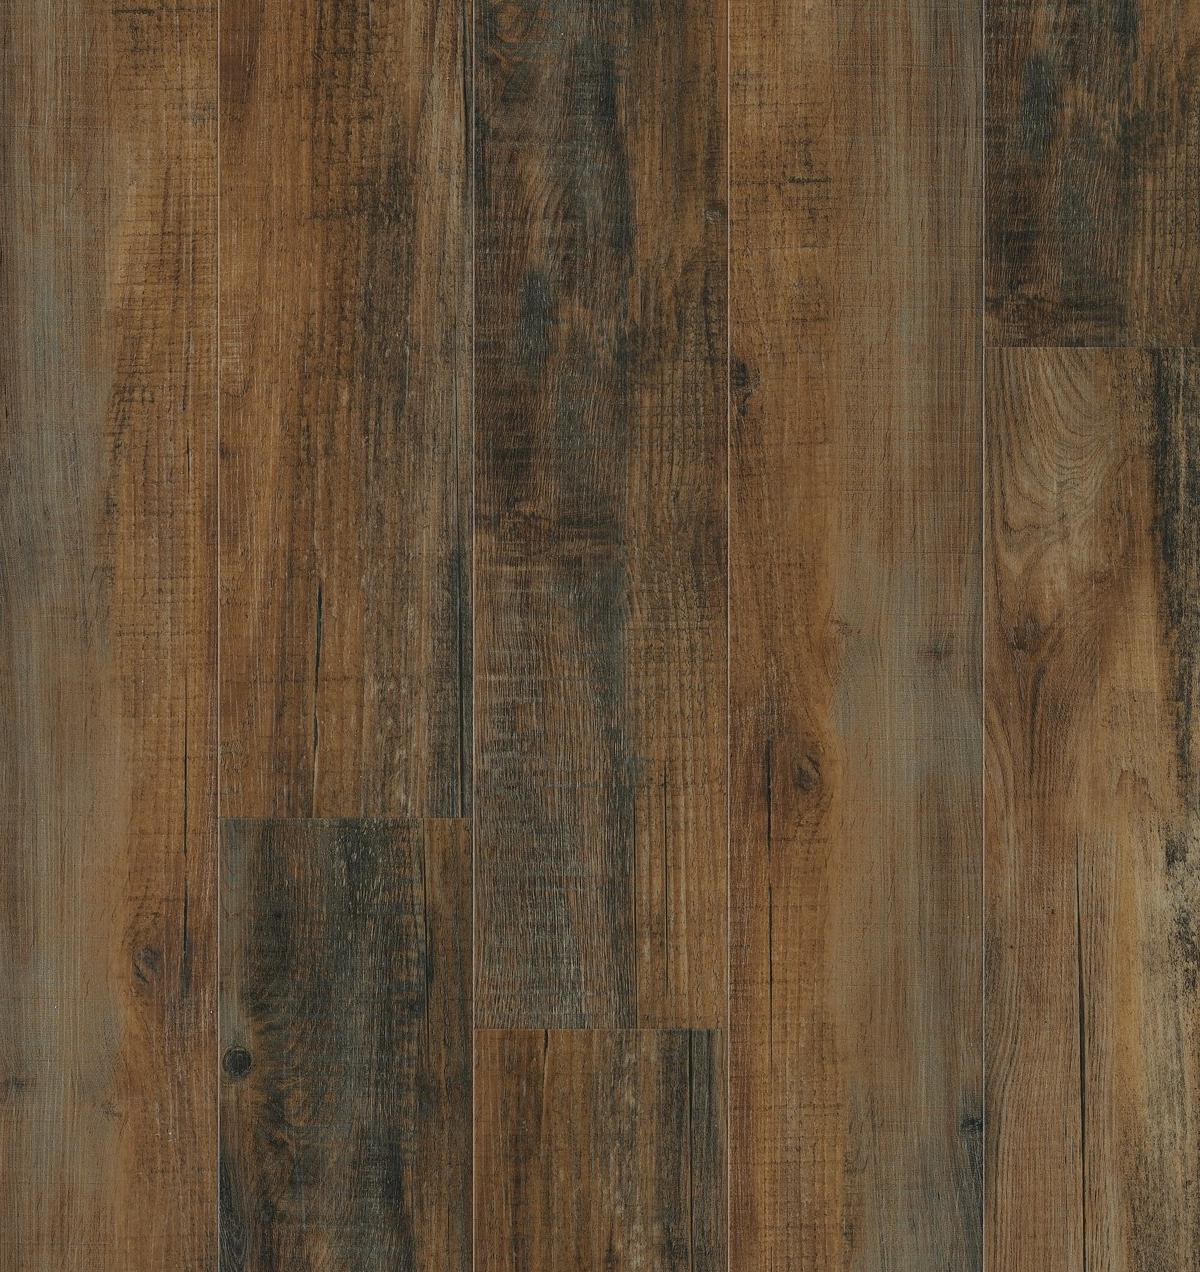 Earthwerks lwc 4810 vinyl flooring for Cheap linoleum flooring